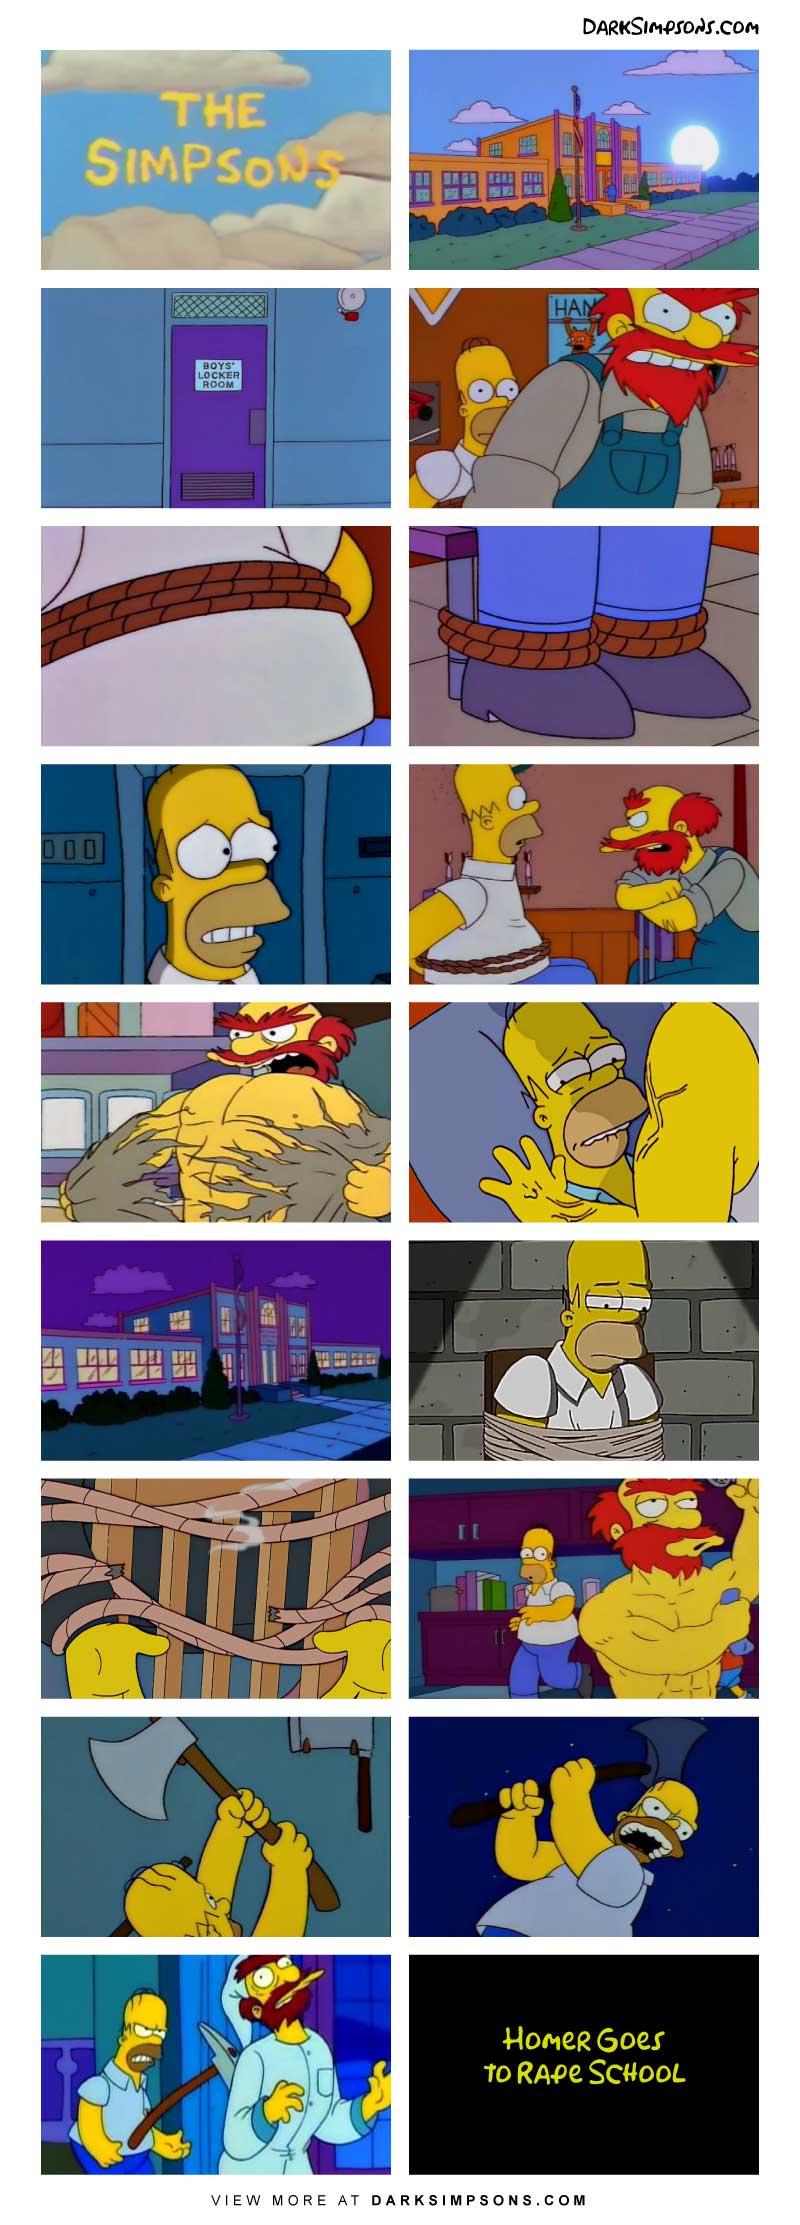 Homer finds himself kidnapped (again), this time by the angry Scotsman, Groundskeeper Willie. The night does not go well for either of them.